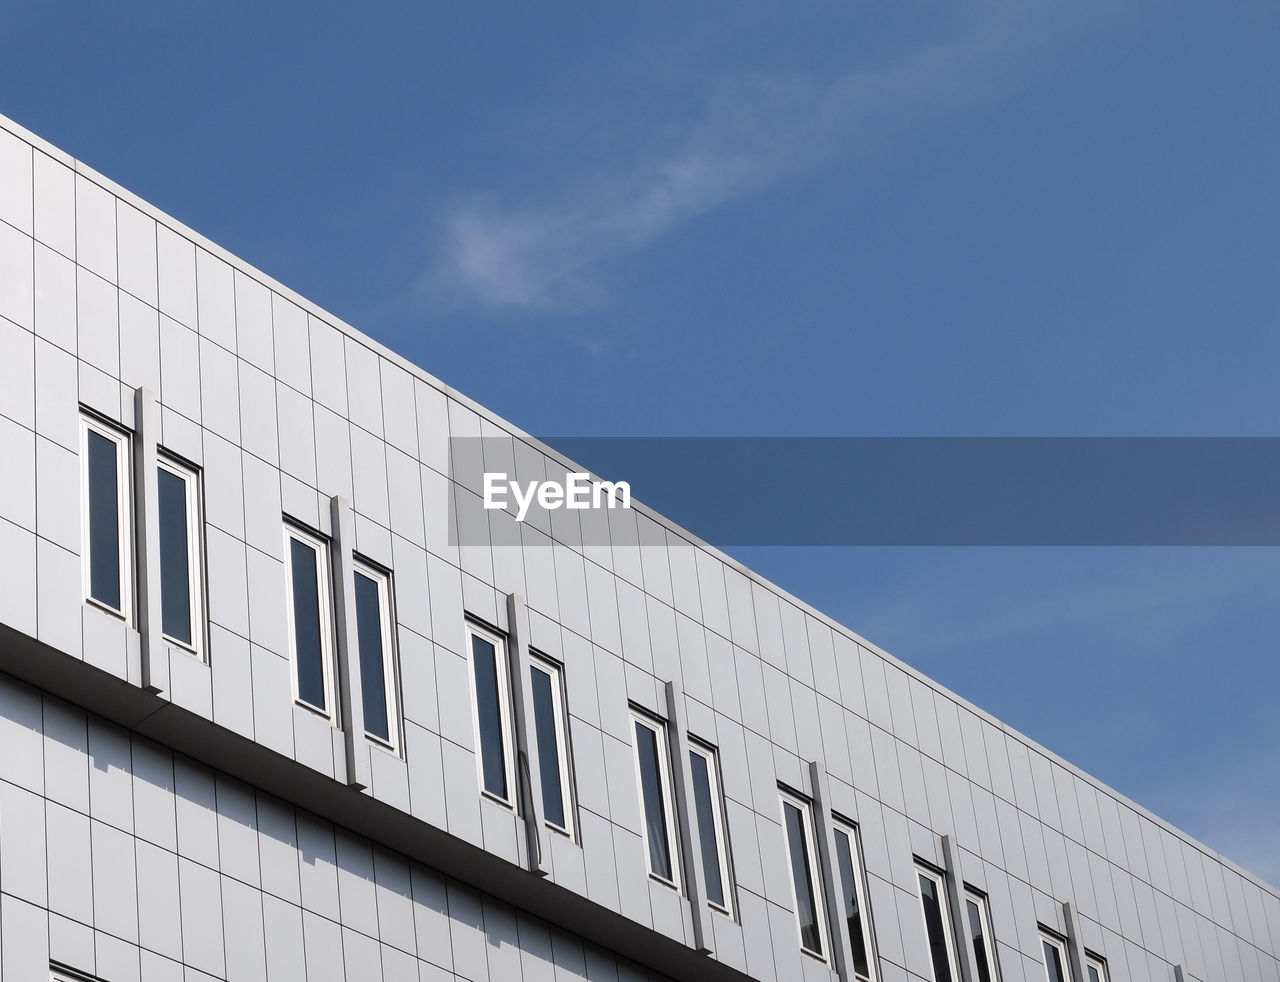 text, communication, day, low angle view, blue, no people, building exterior, architecture, outdoors, built structure, sky